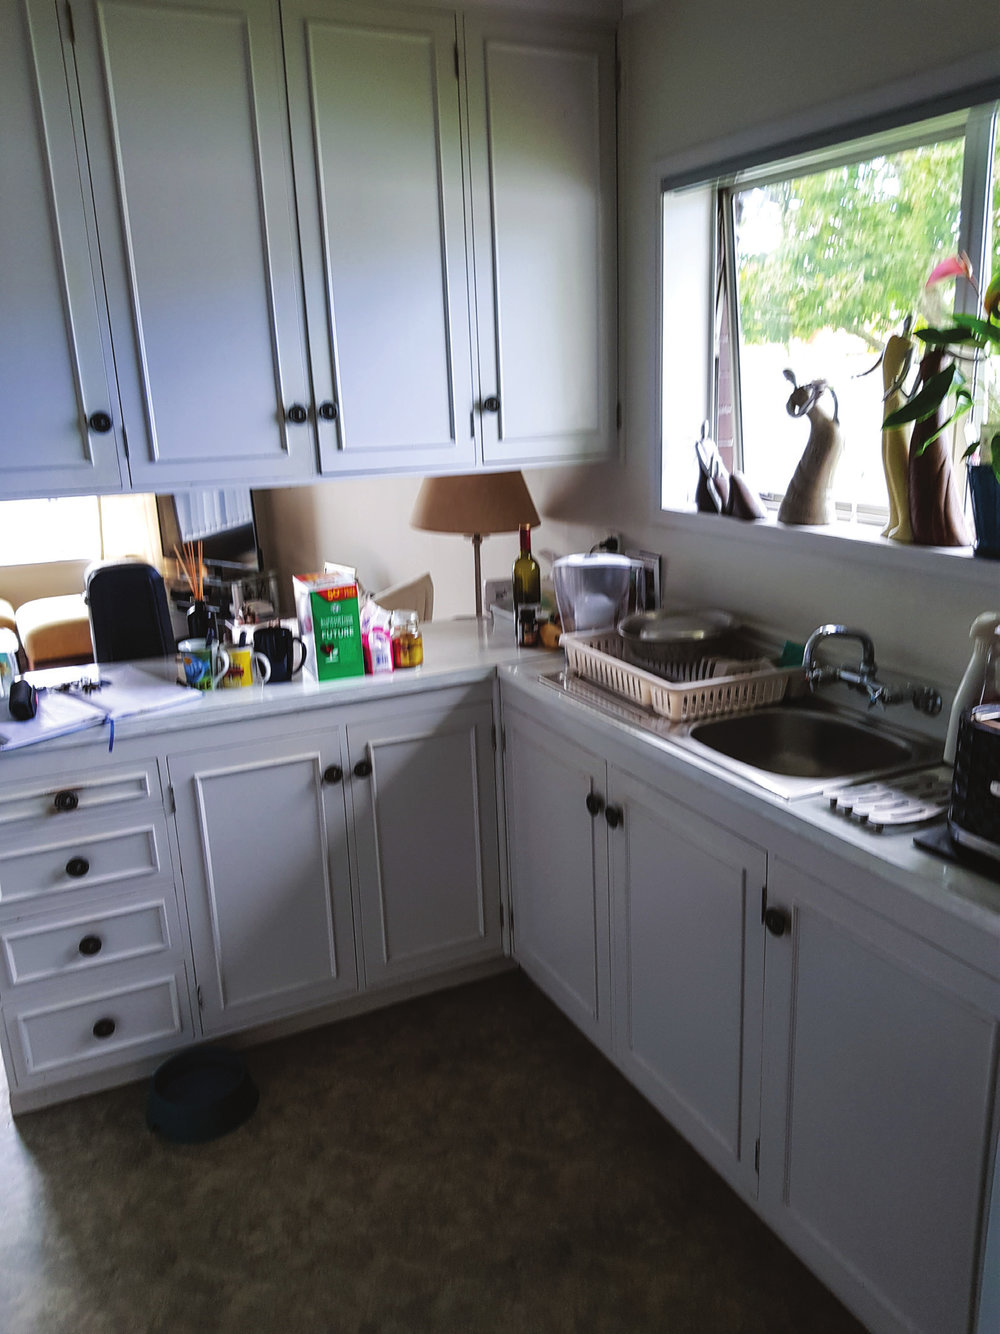 The old existing kitchen was dated and darkened by the ceiling-hung units